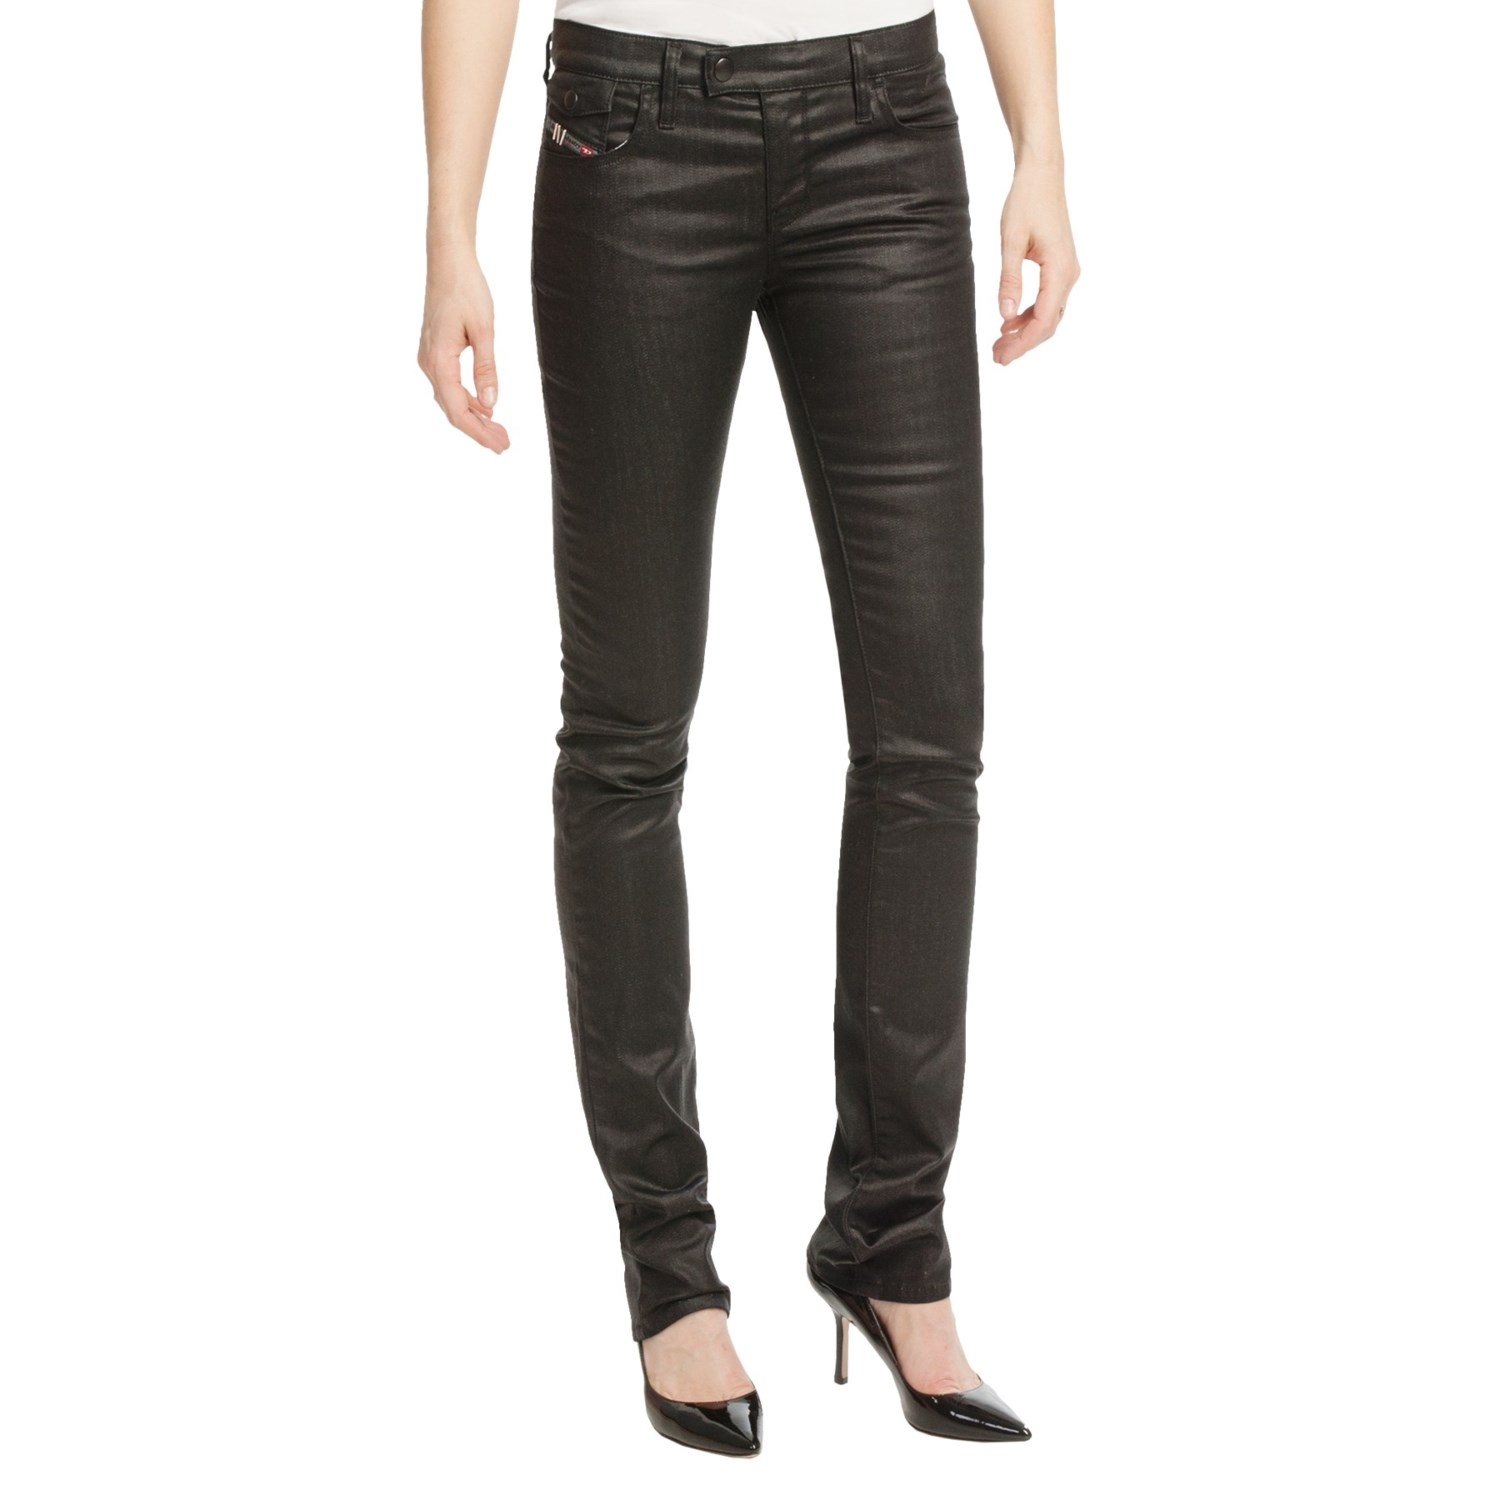 Cheap womens skinny jeans online – Global trend jeans models